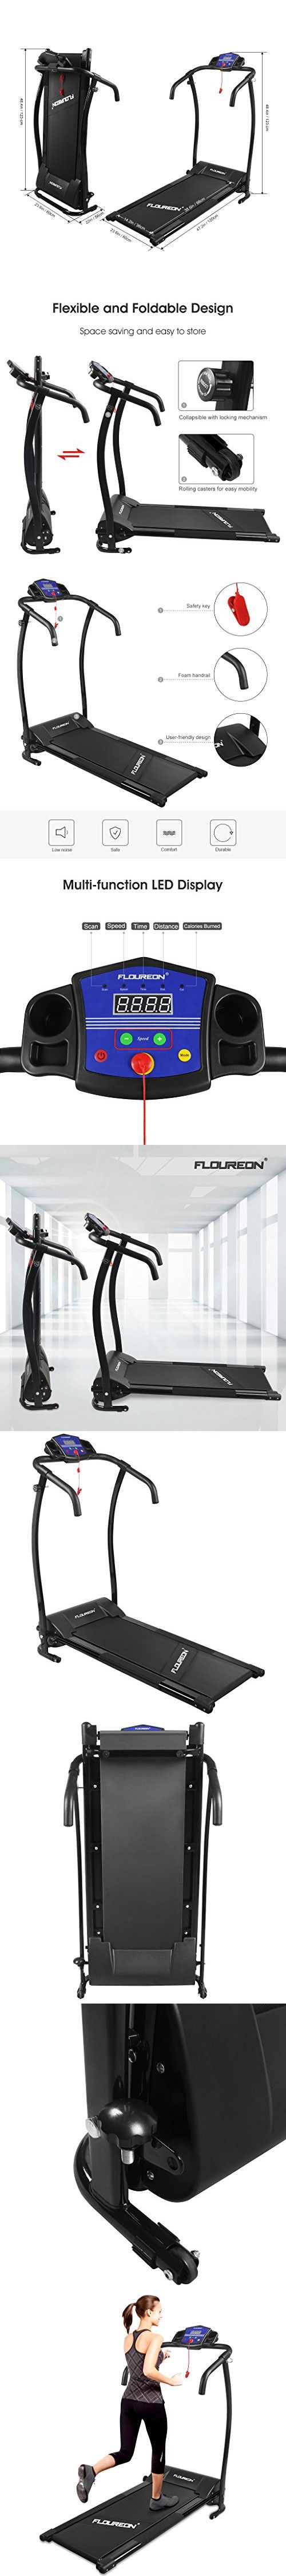 "Floureon Folding Electric Motorized Treadmill Running Jogging Walking Machine Portable Gym Equipment for Fitness and Exercise, 600W, 47.2x23.6x48.4"", Black"